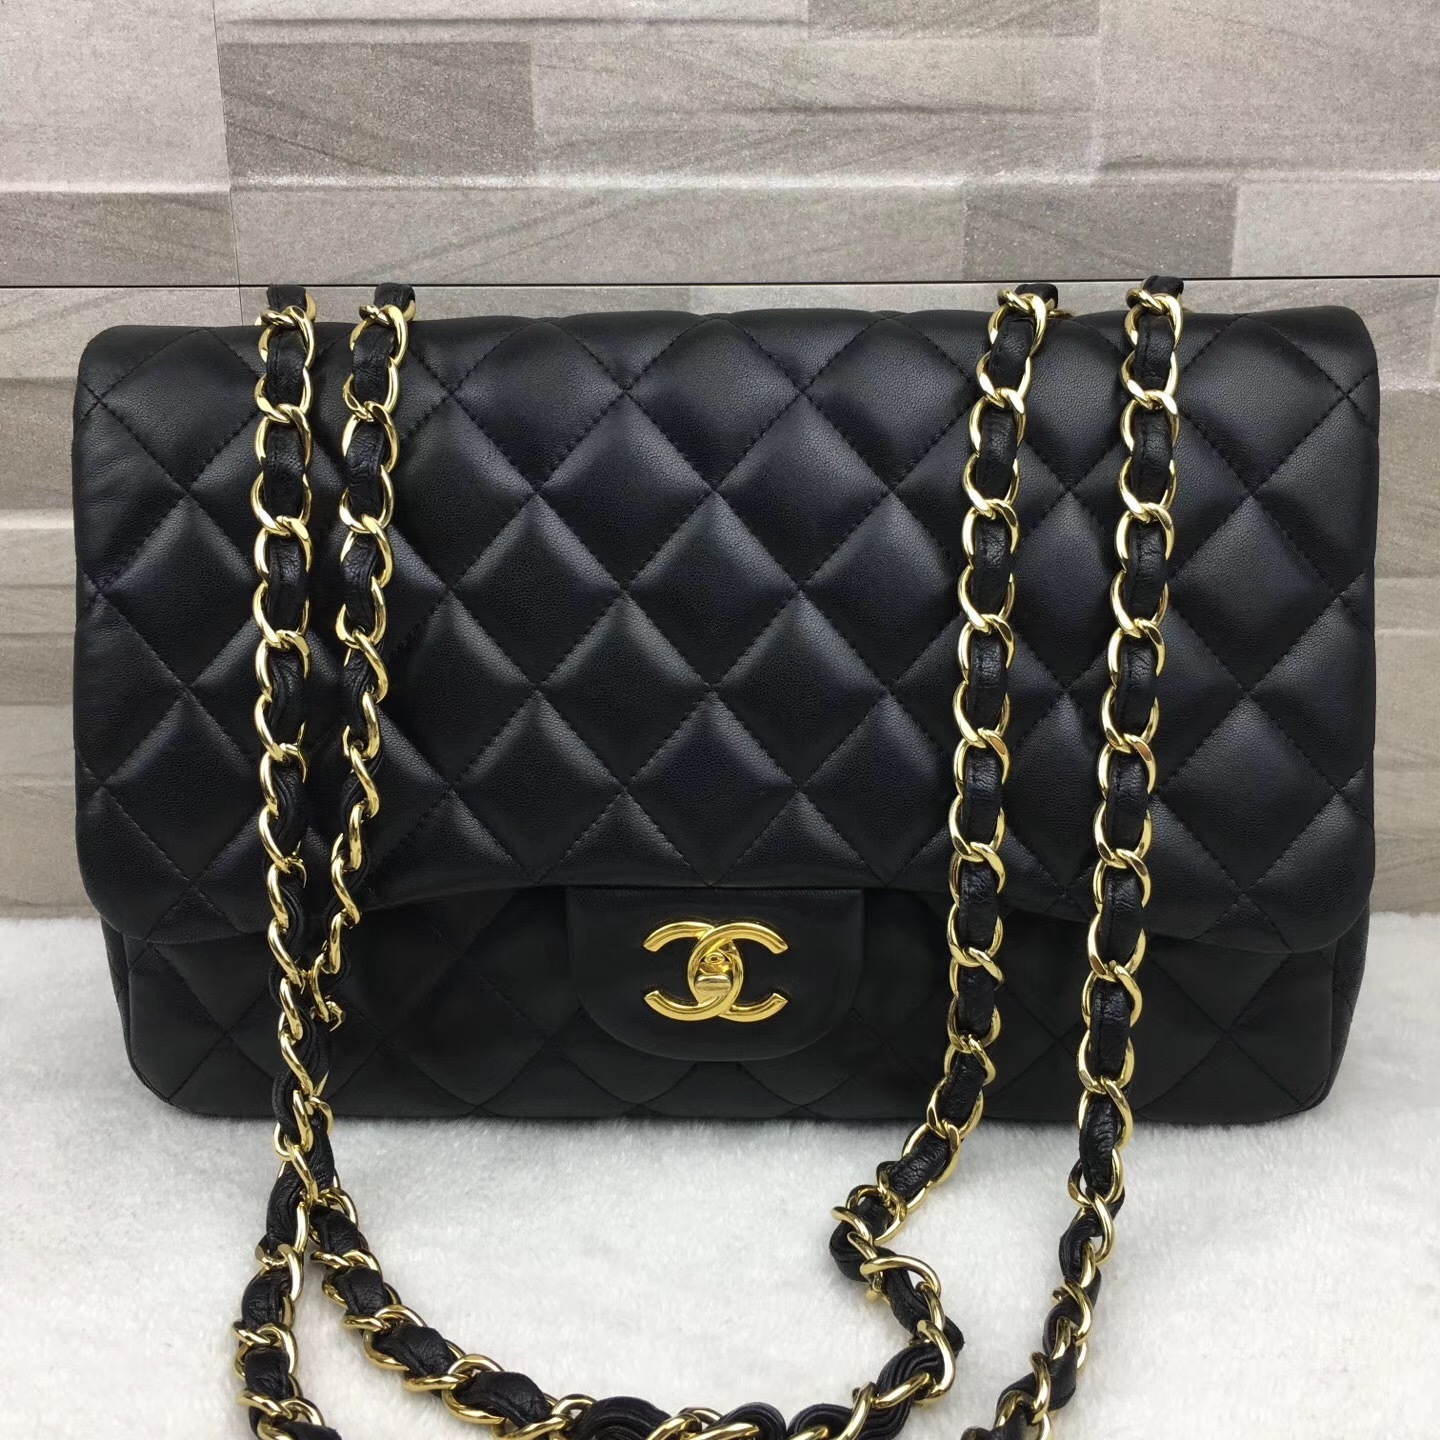 80808627d8dc Img 6496. Img 6496. Previous. AUTHENTIC CHANEL BLACK QUILTED LAMBSKIN JUMBO  CLASSIC FLAP BAG GOLDTONE HARDWARE